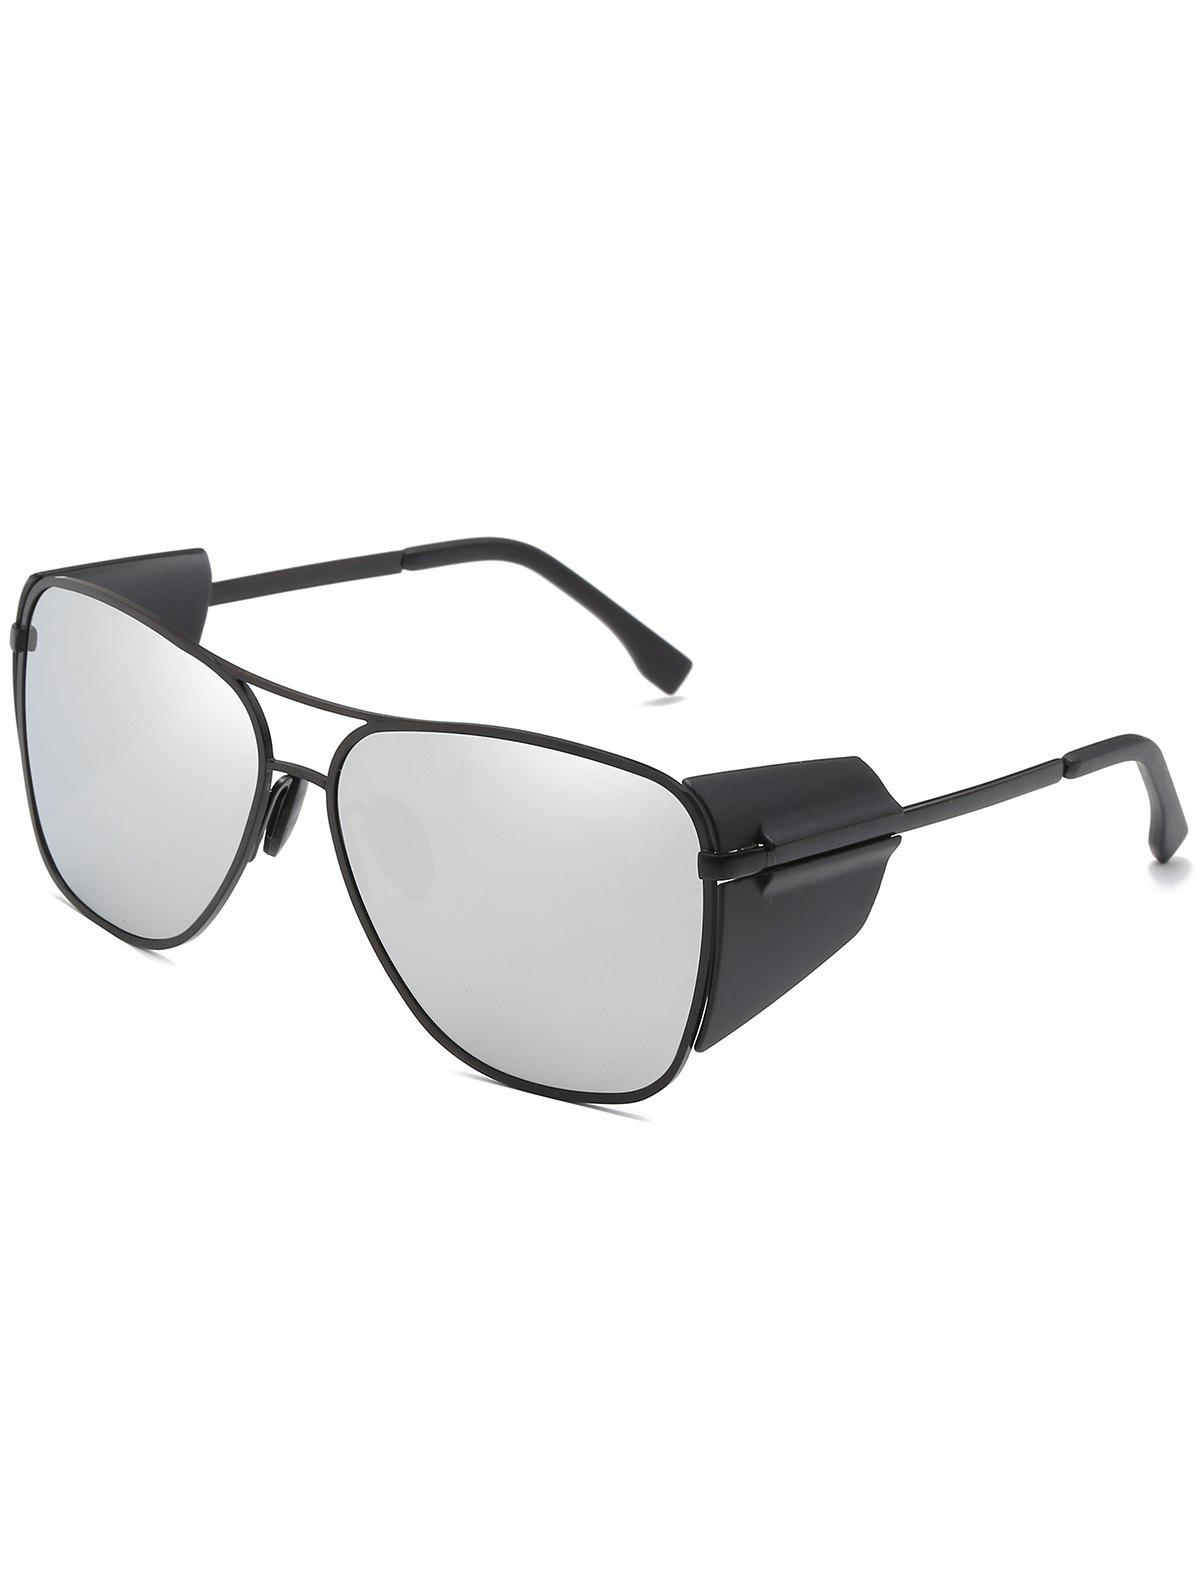 Anti Fatigue Top Bar Frog Mirror Sunglasses - PLATINUM